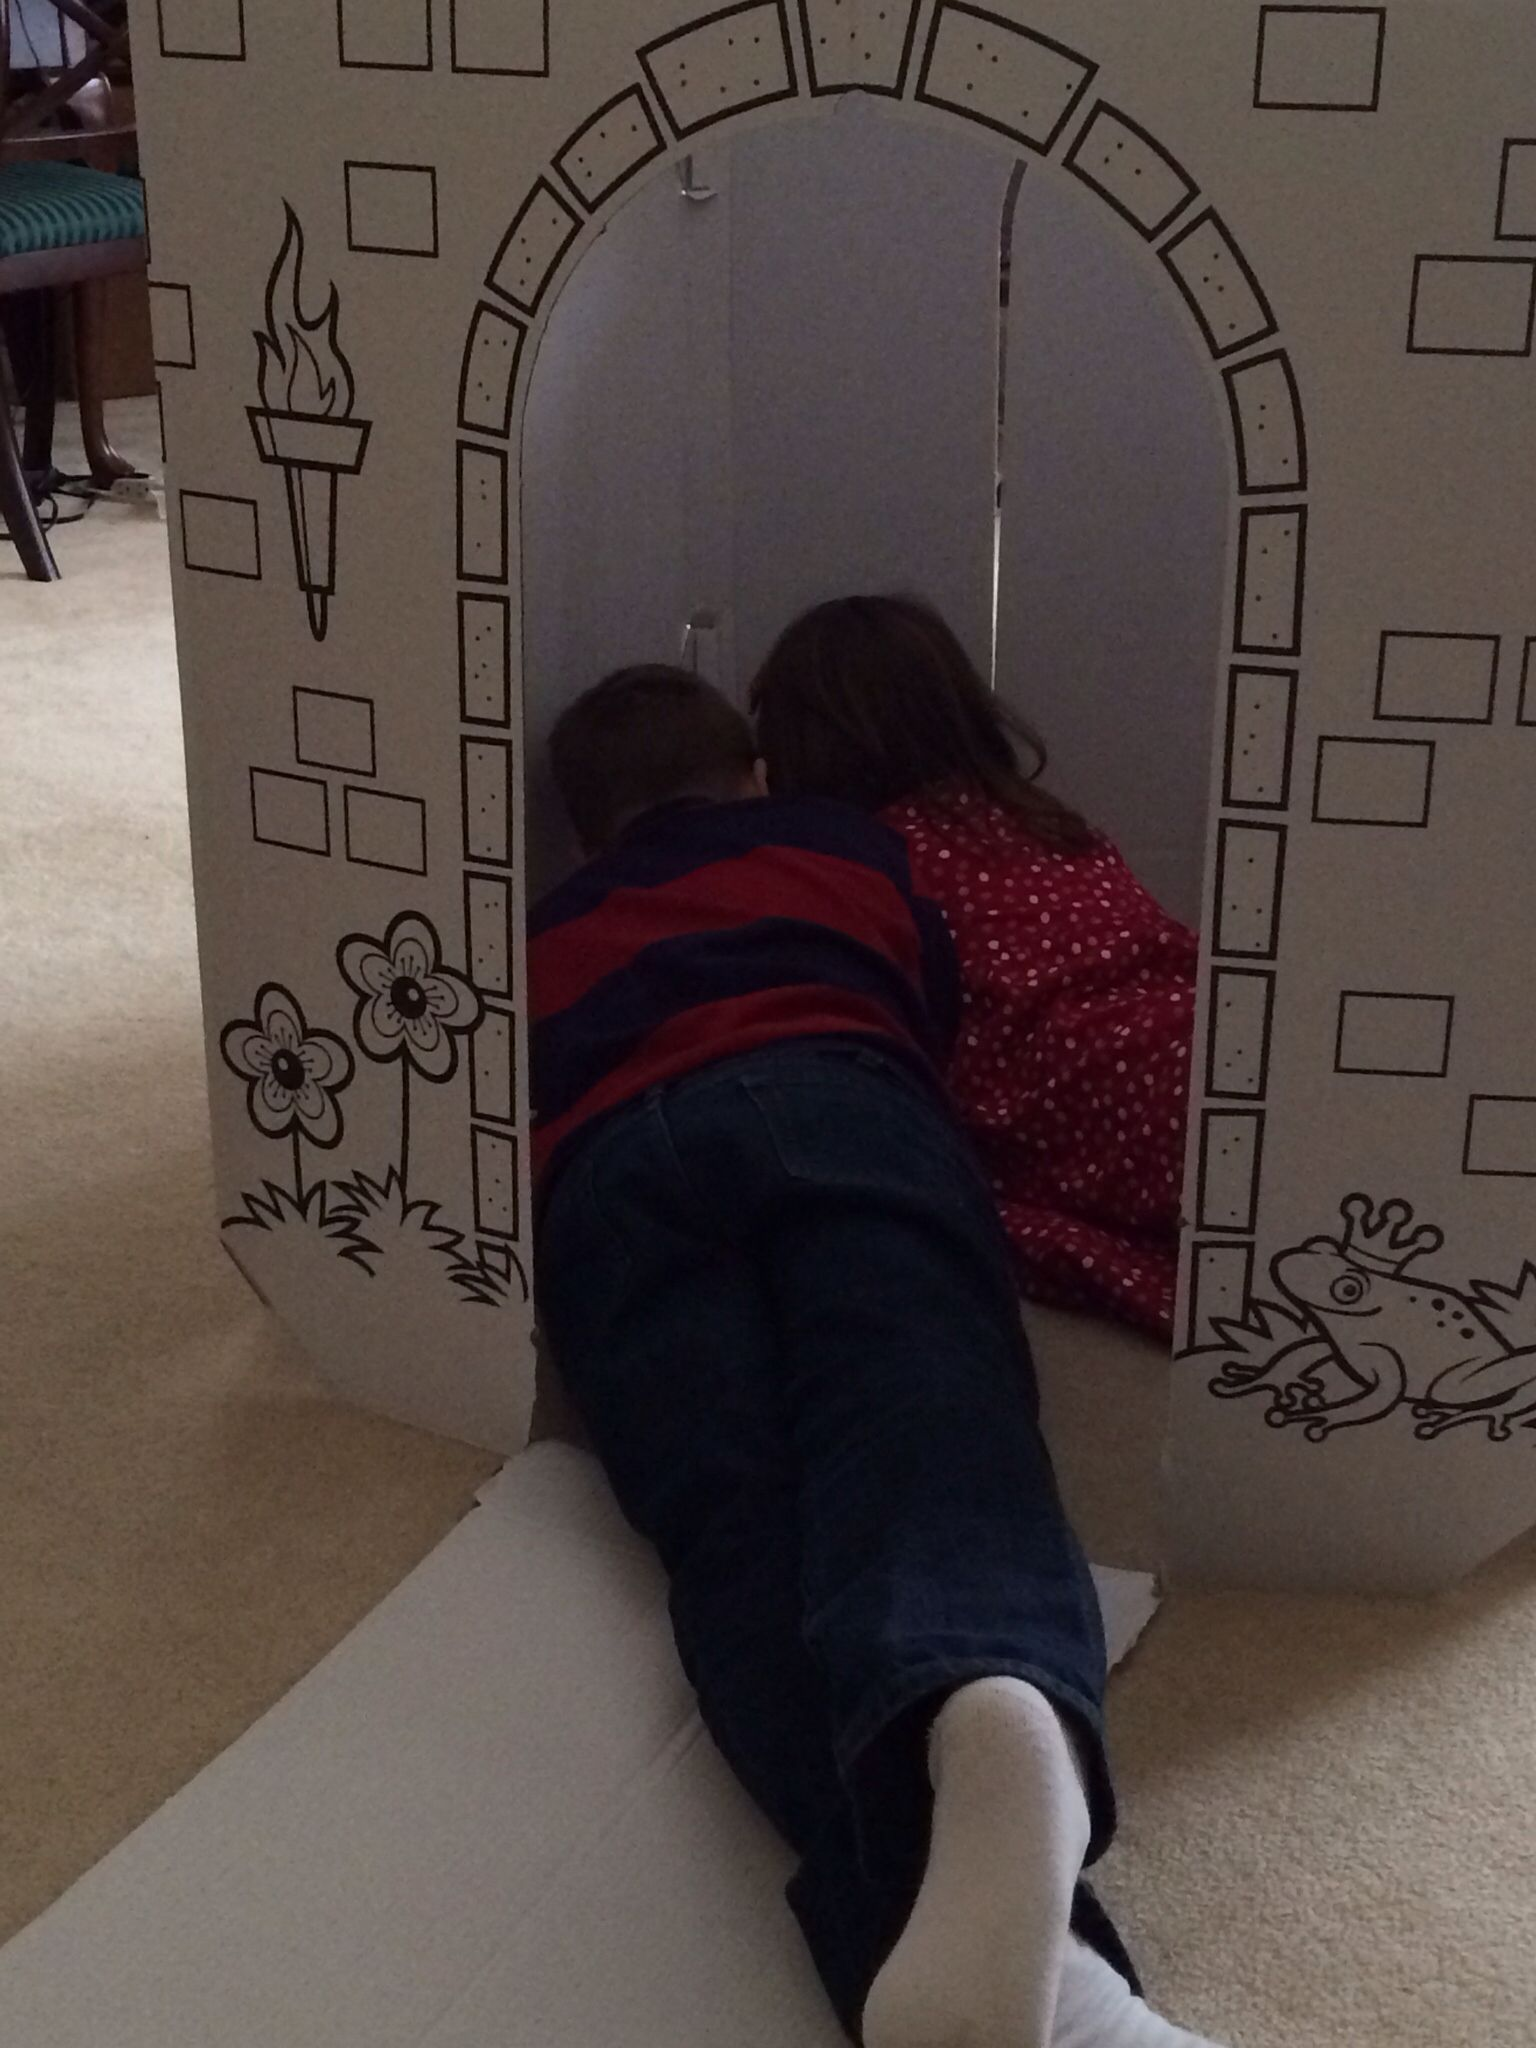 Reading together in a cardboard castle? I love homeschooling.